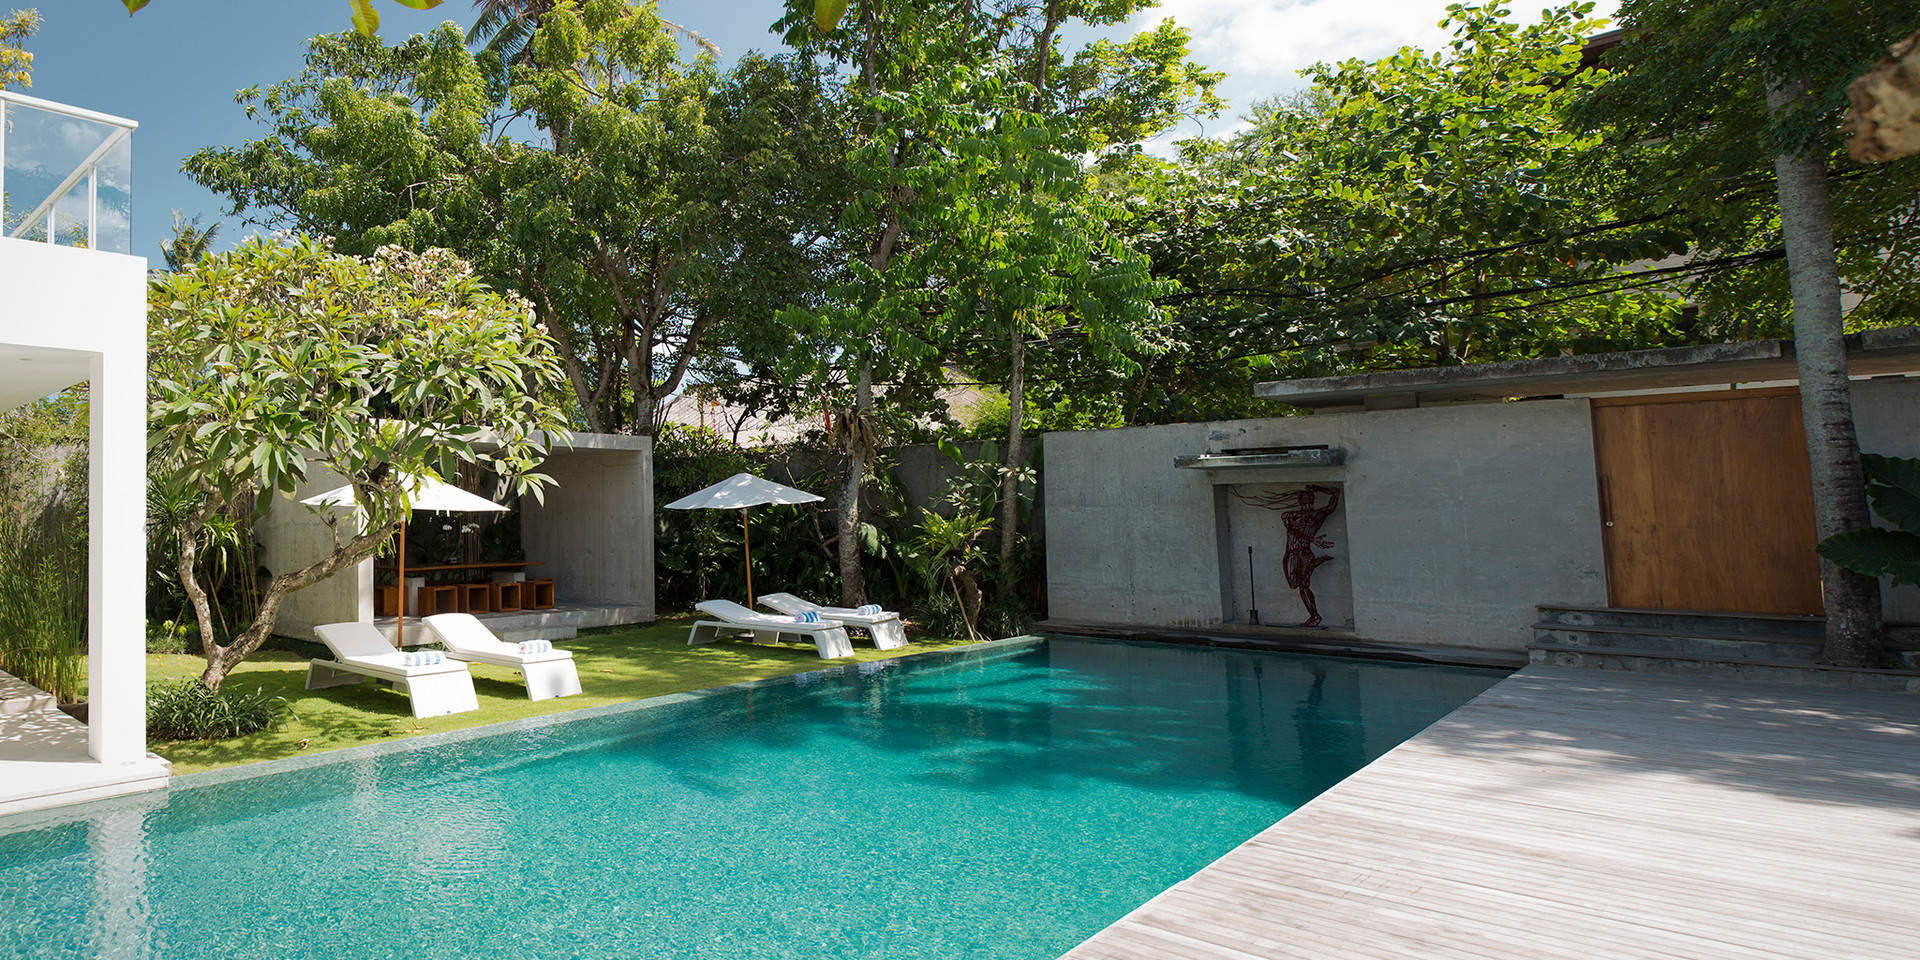 18. Villa Canggu - Villa South pool and deck